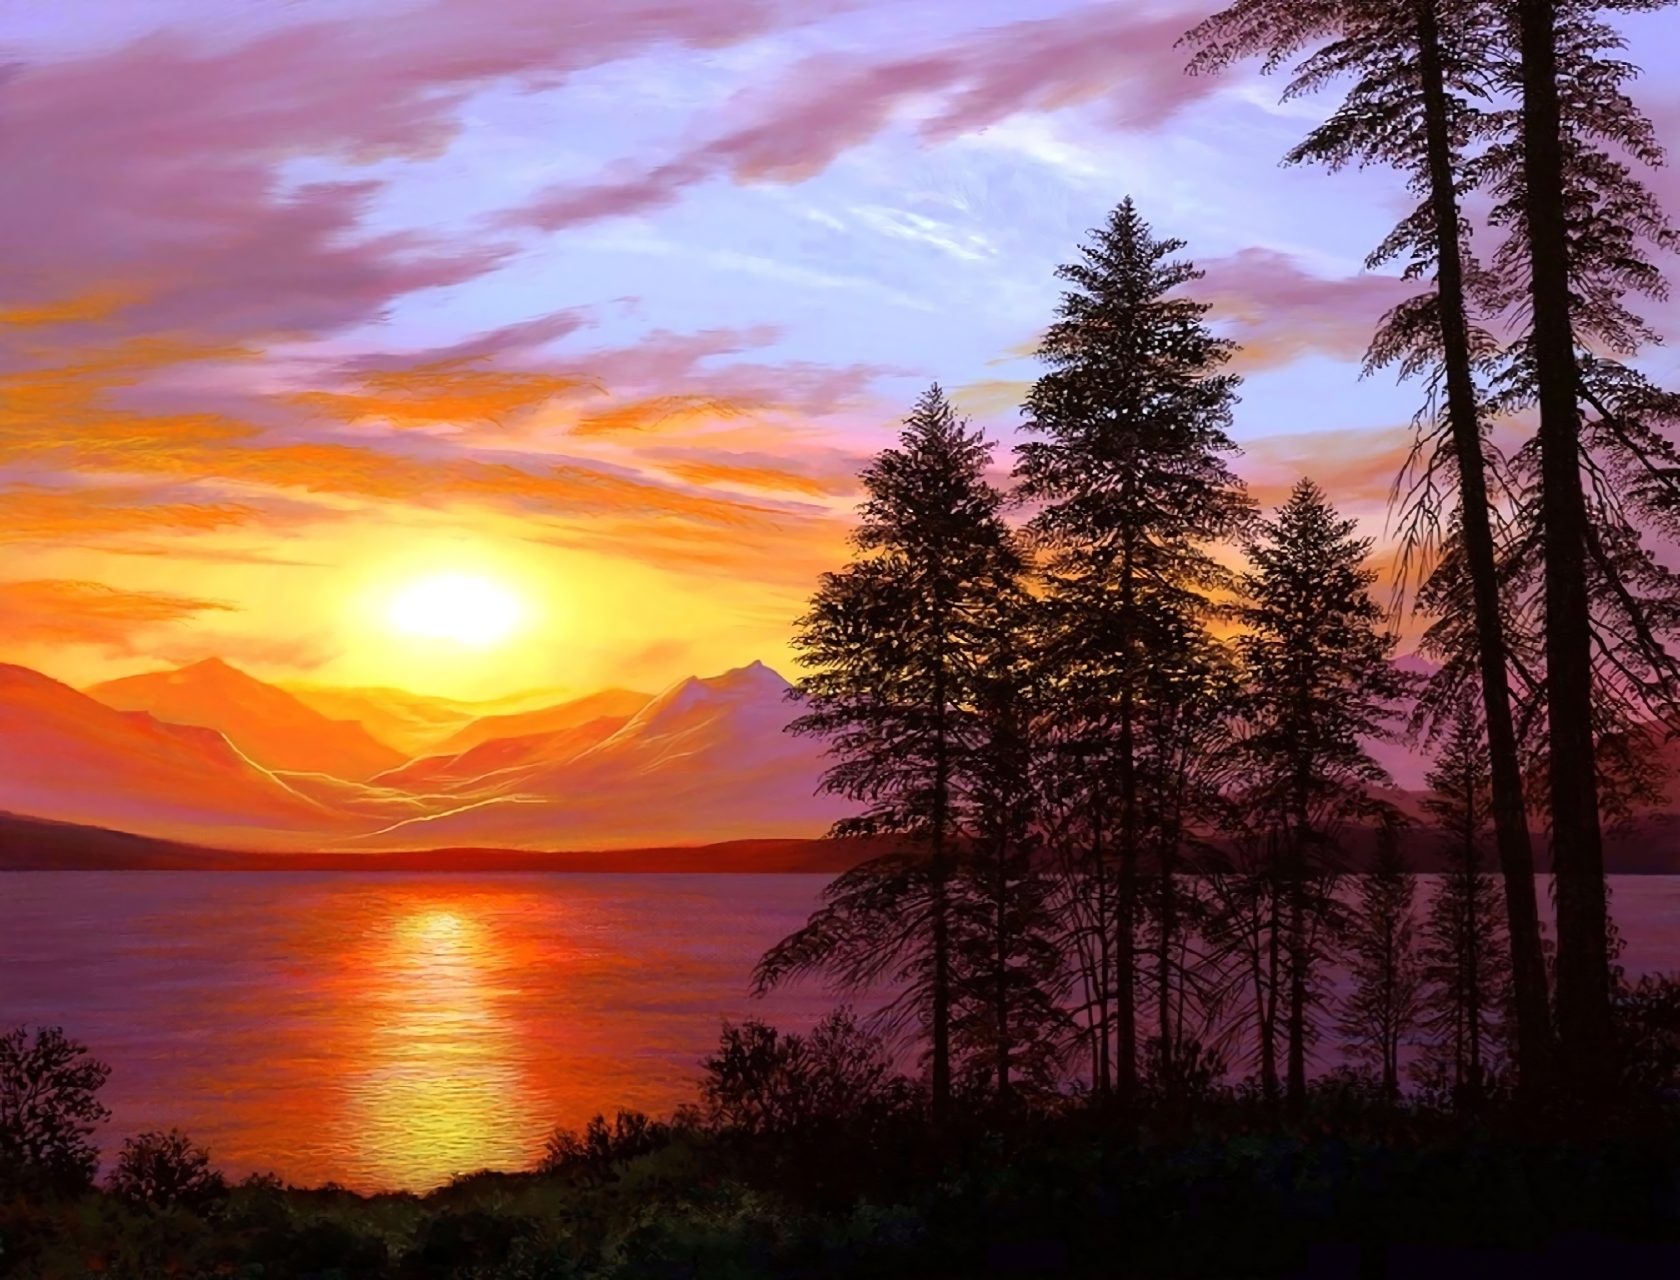 Sunset Over Mountains And Lake Wallpaper And Background Image